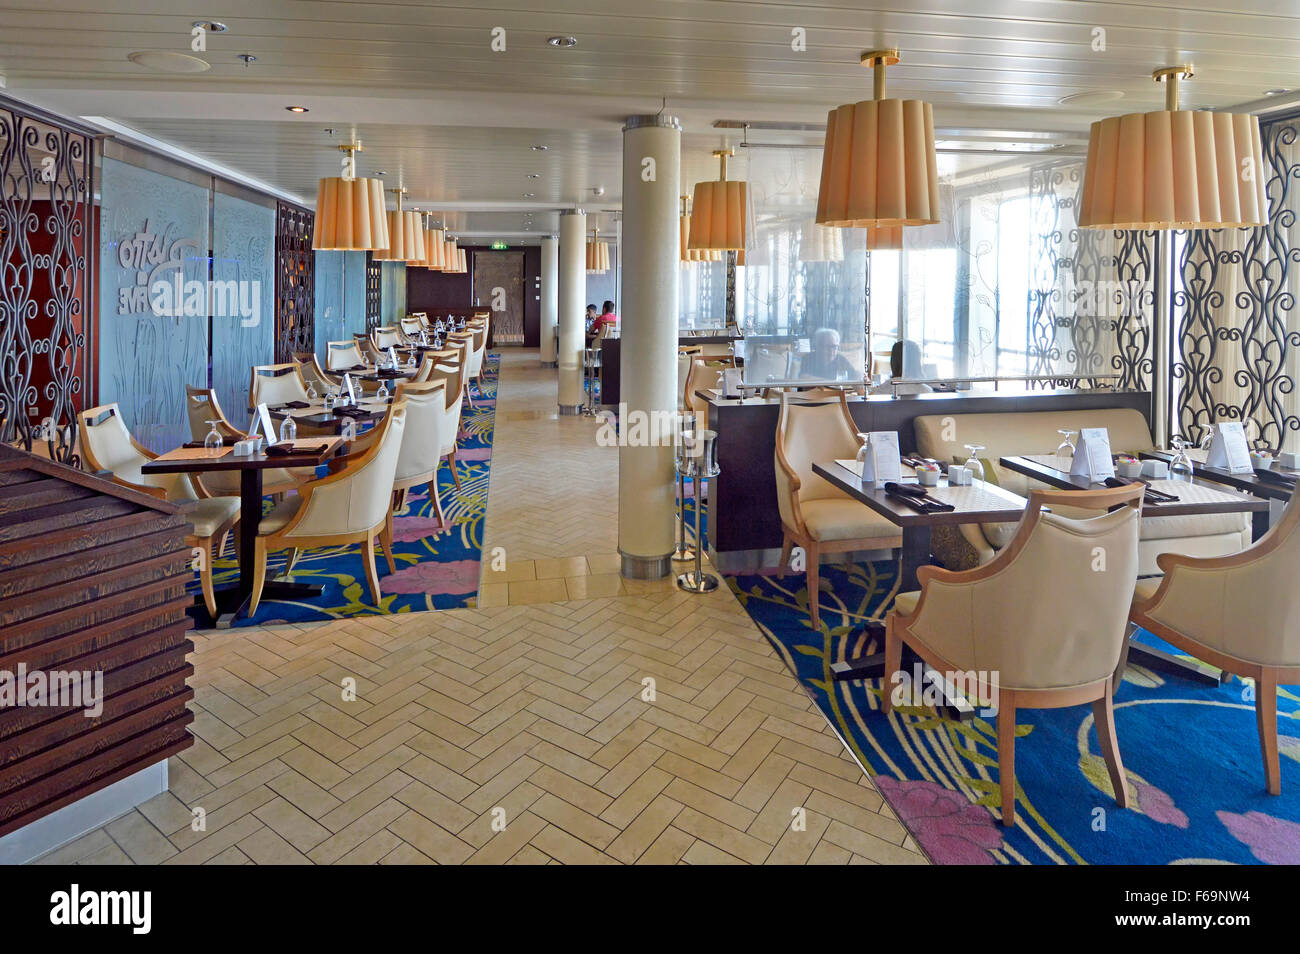 Cruise Ship Ocean Liner Mediterranean Cruising Small Informal Bistro Restaurant Option Away From The Main Restaurants